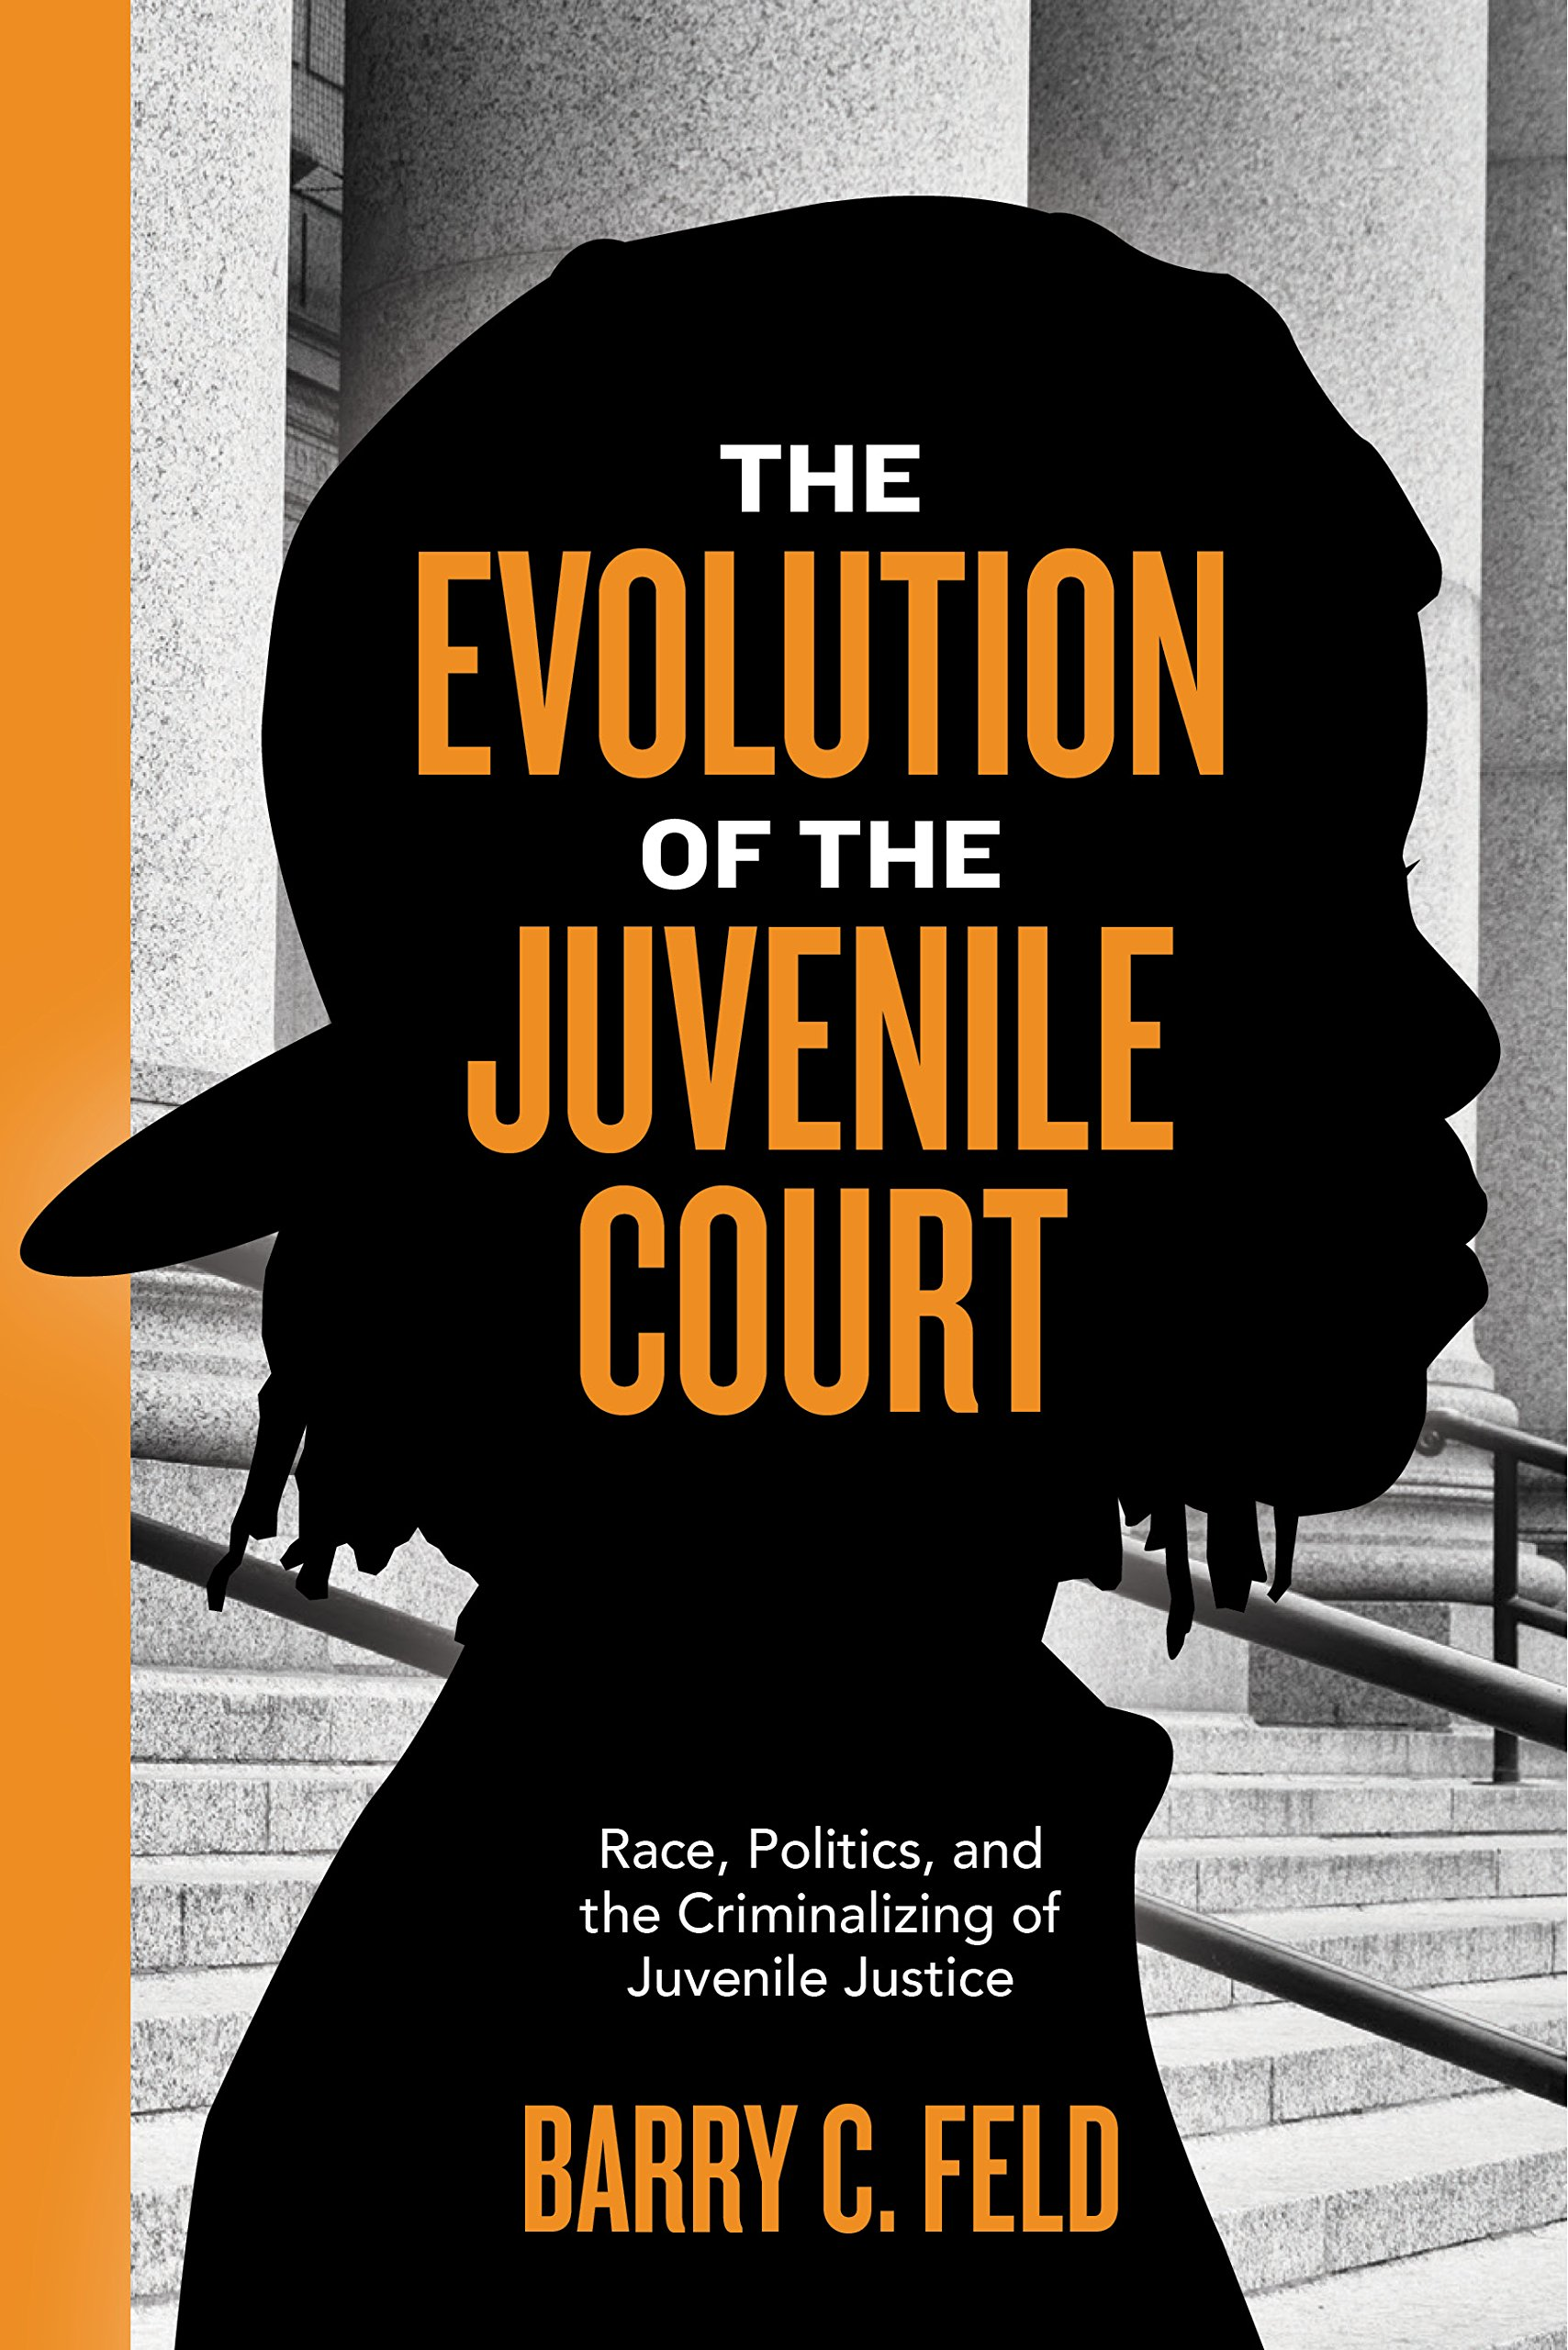 The Contexts of Juvenile Justice Decision Making: When Race Matters